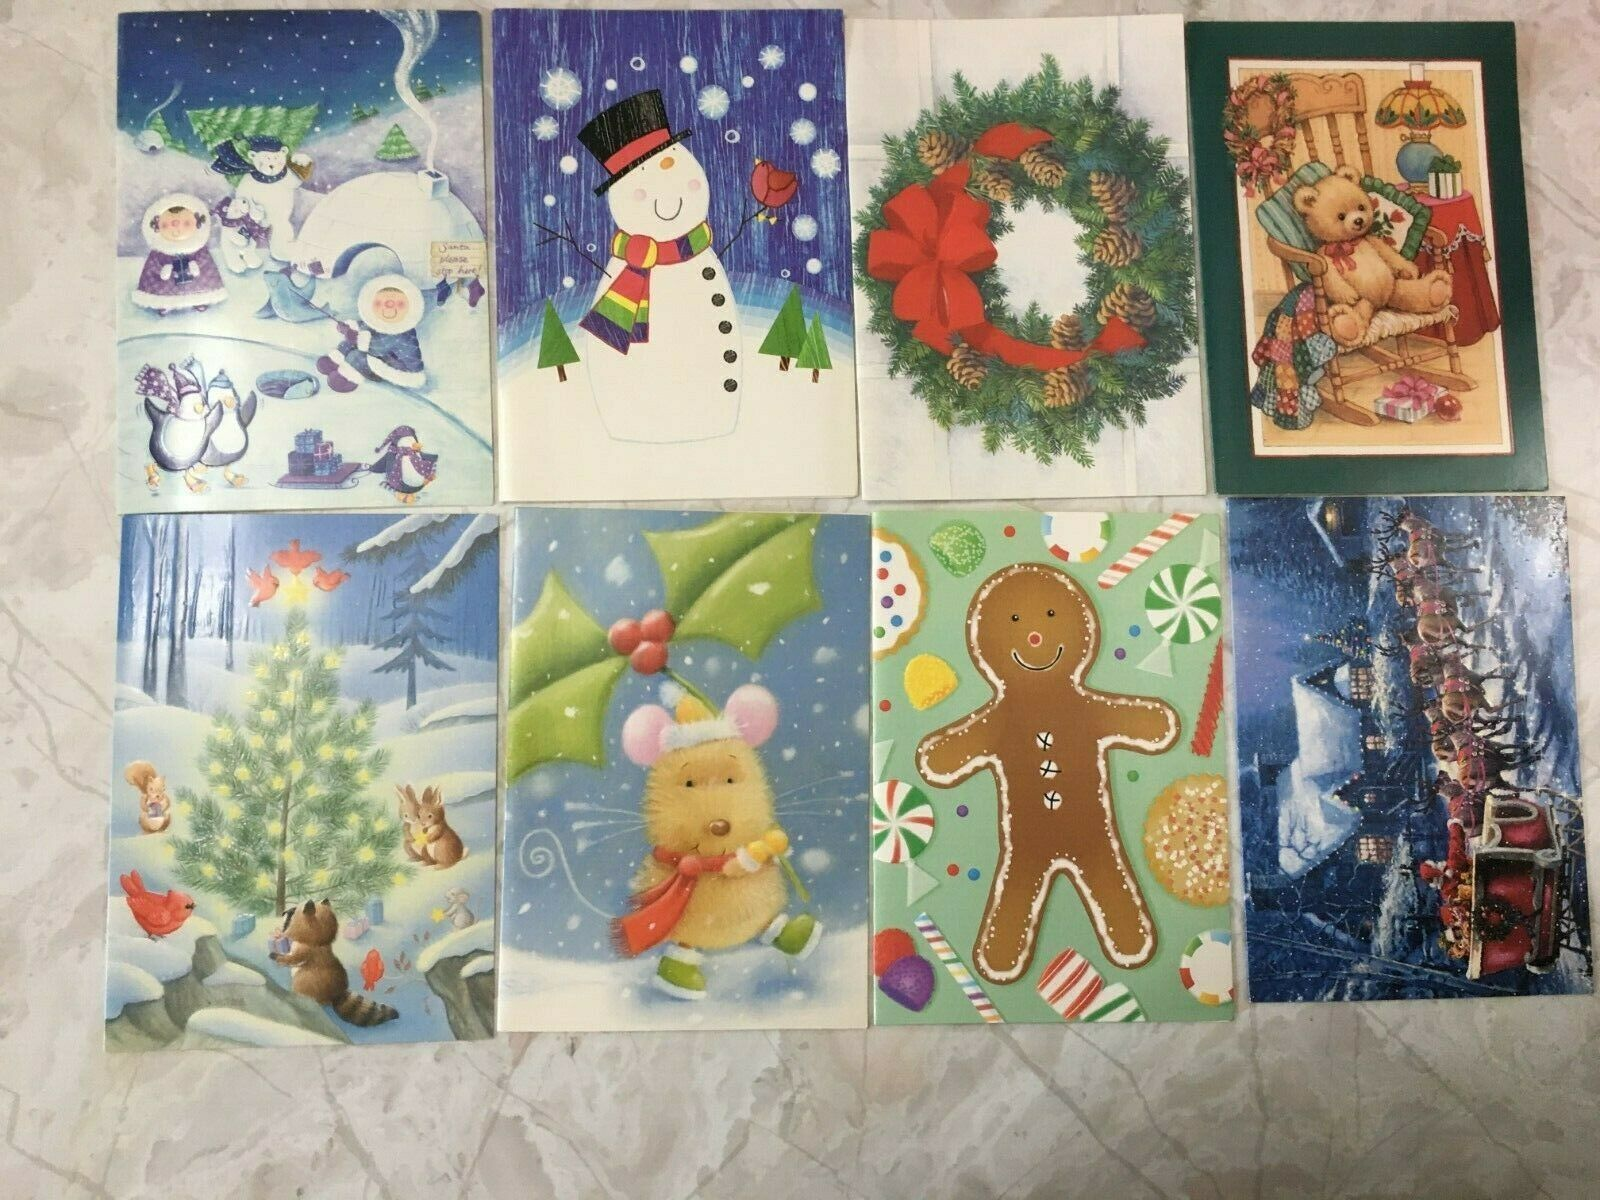 LOT OF 21 Holiday Greeting Cards CHRISTMAS Assorted Paper Magic Group - $14.50